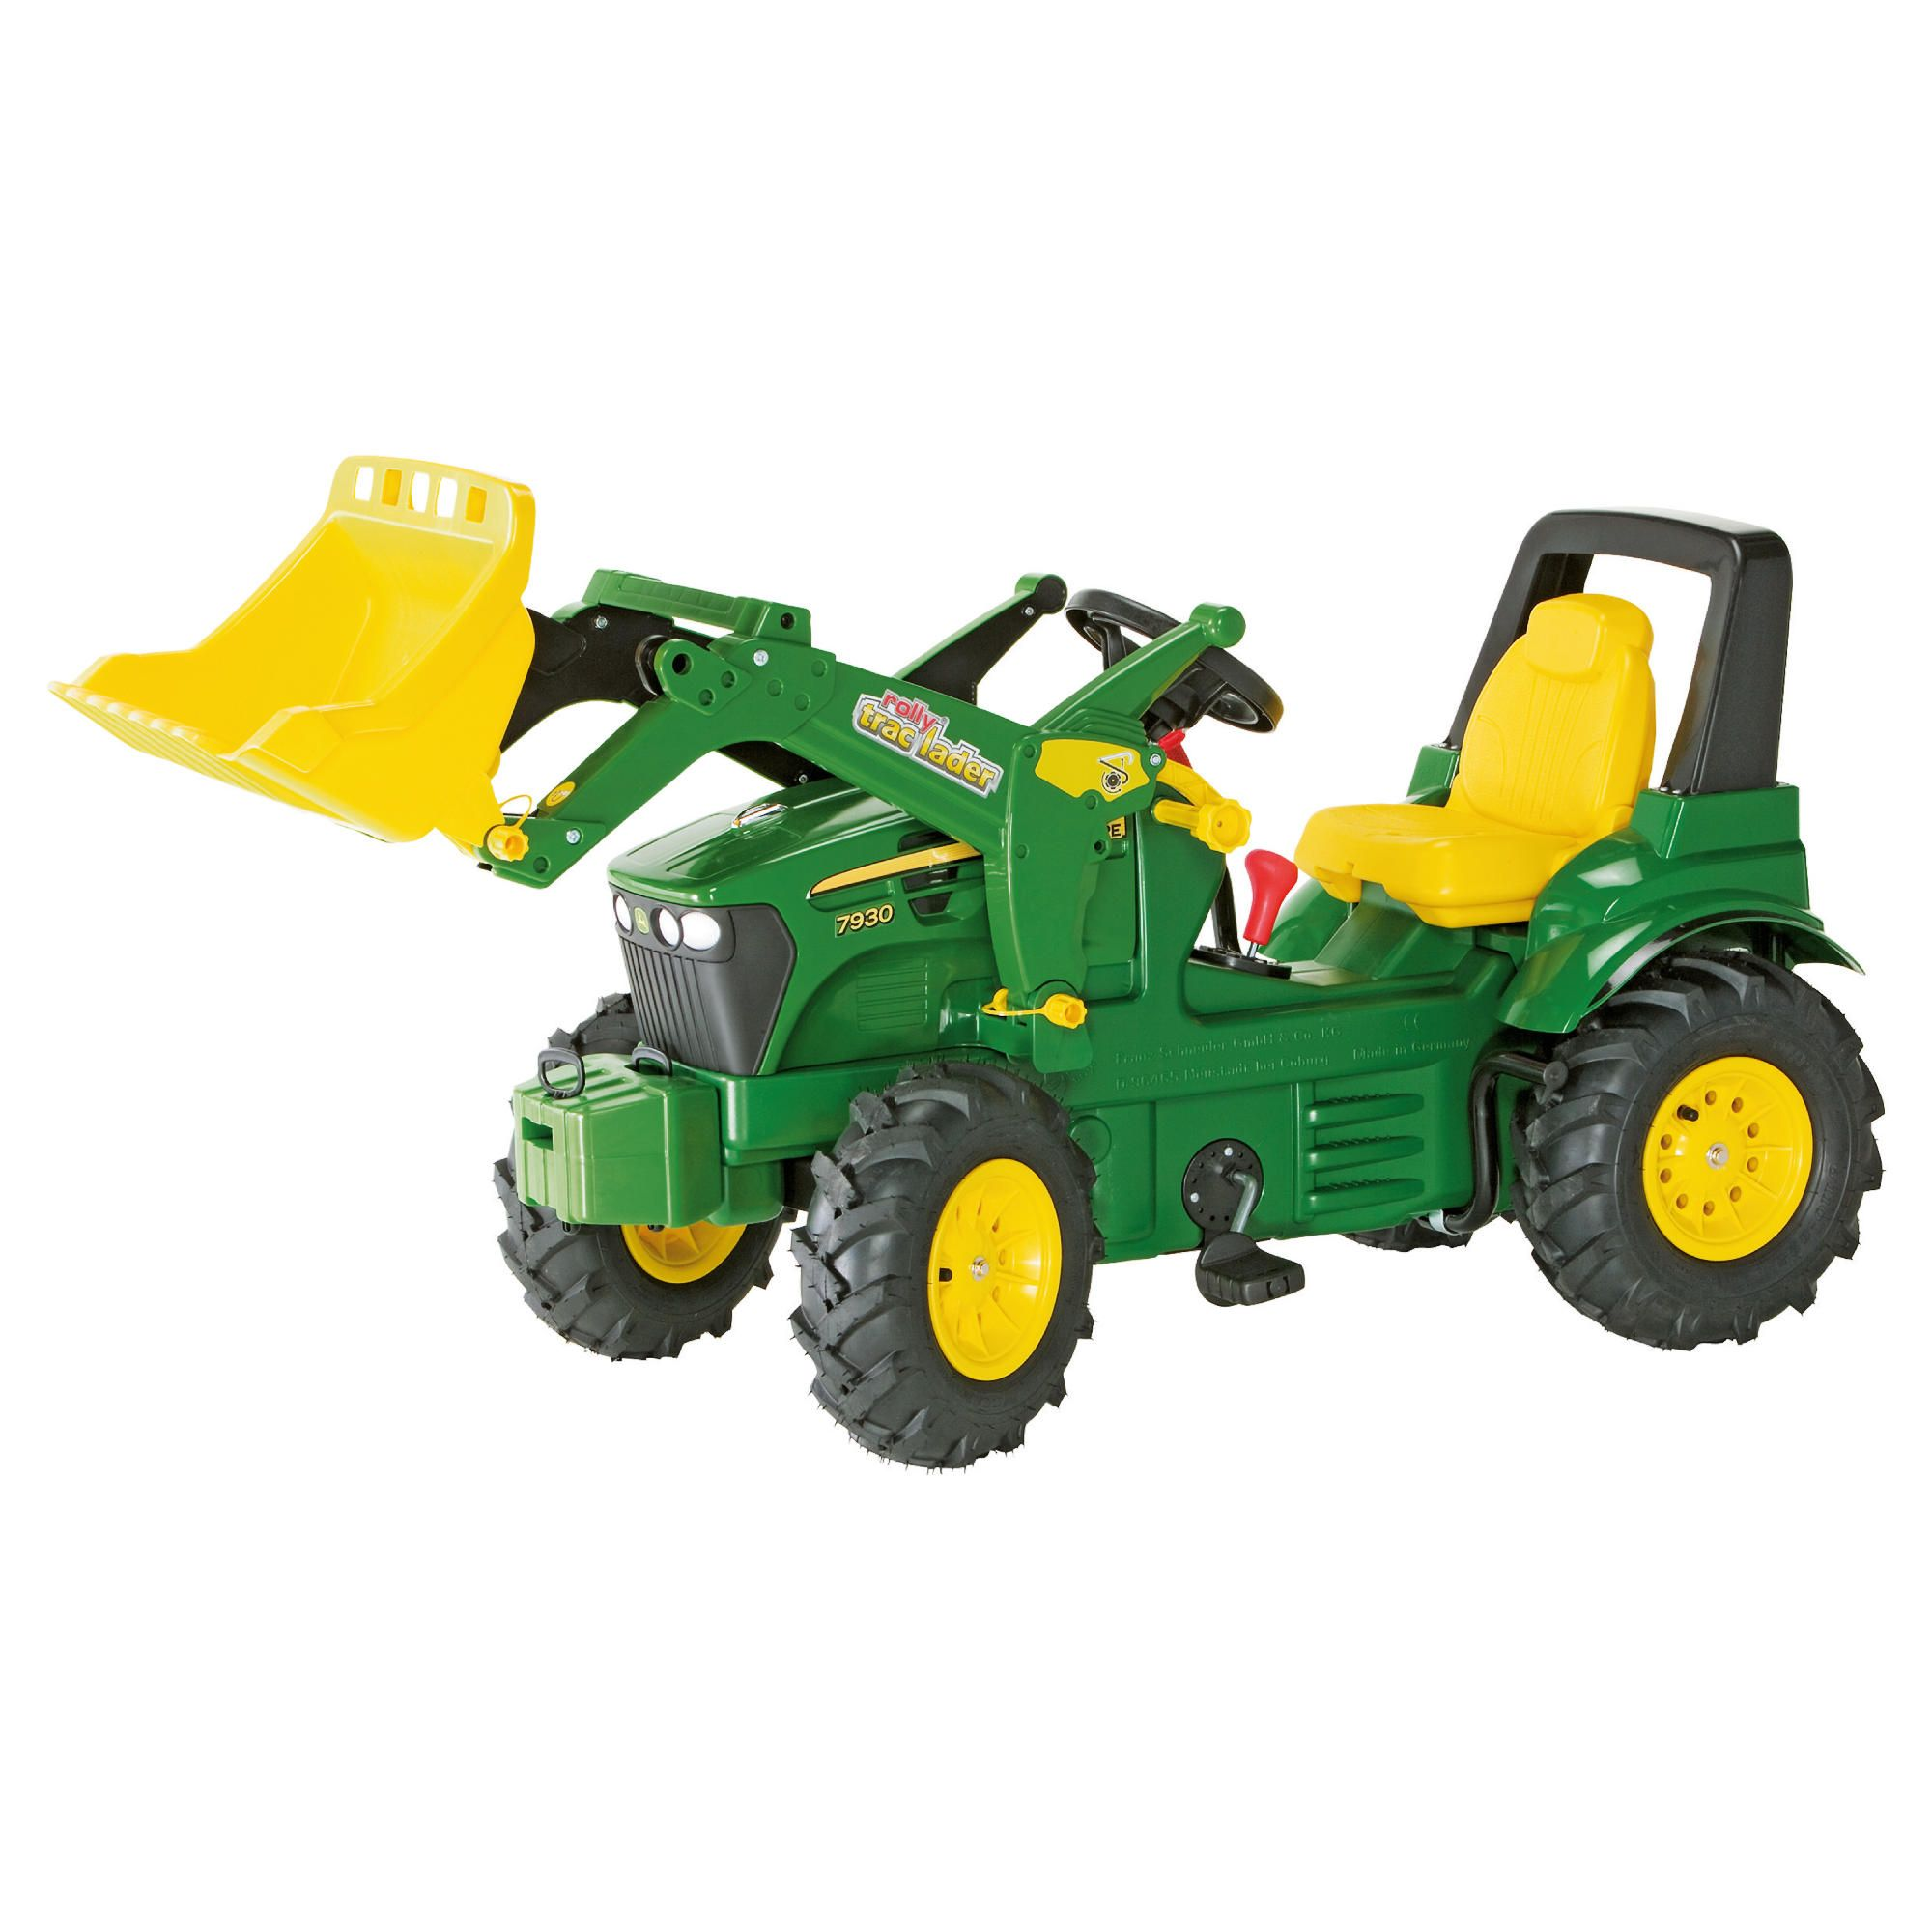 John Deere 7930 Ride-On Tractor & Loader at Tescos Direct